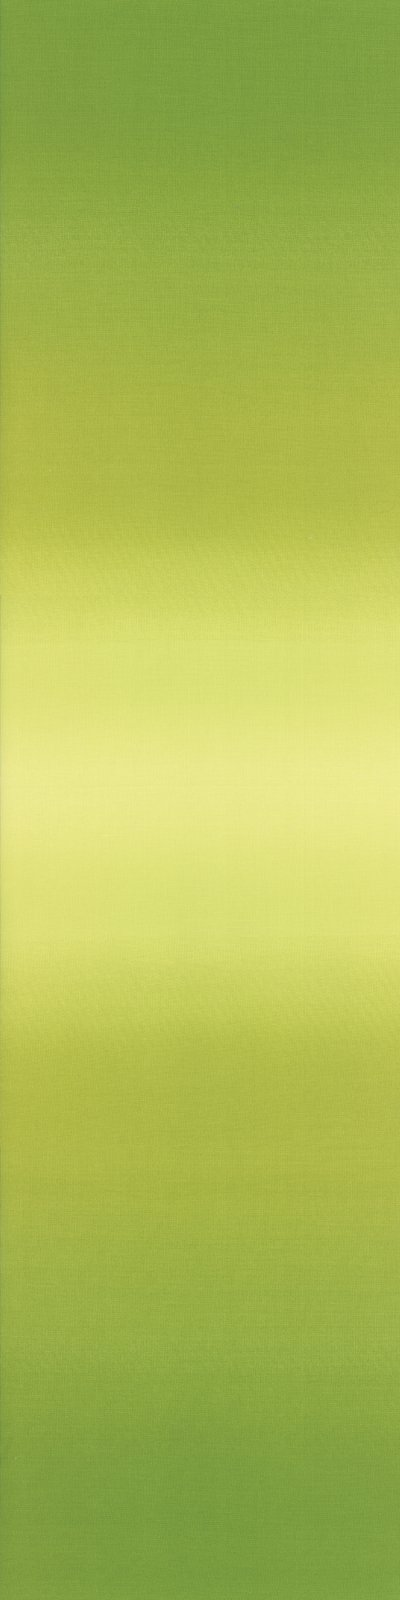 Ombre Lime Green 10800 18